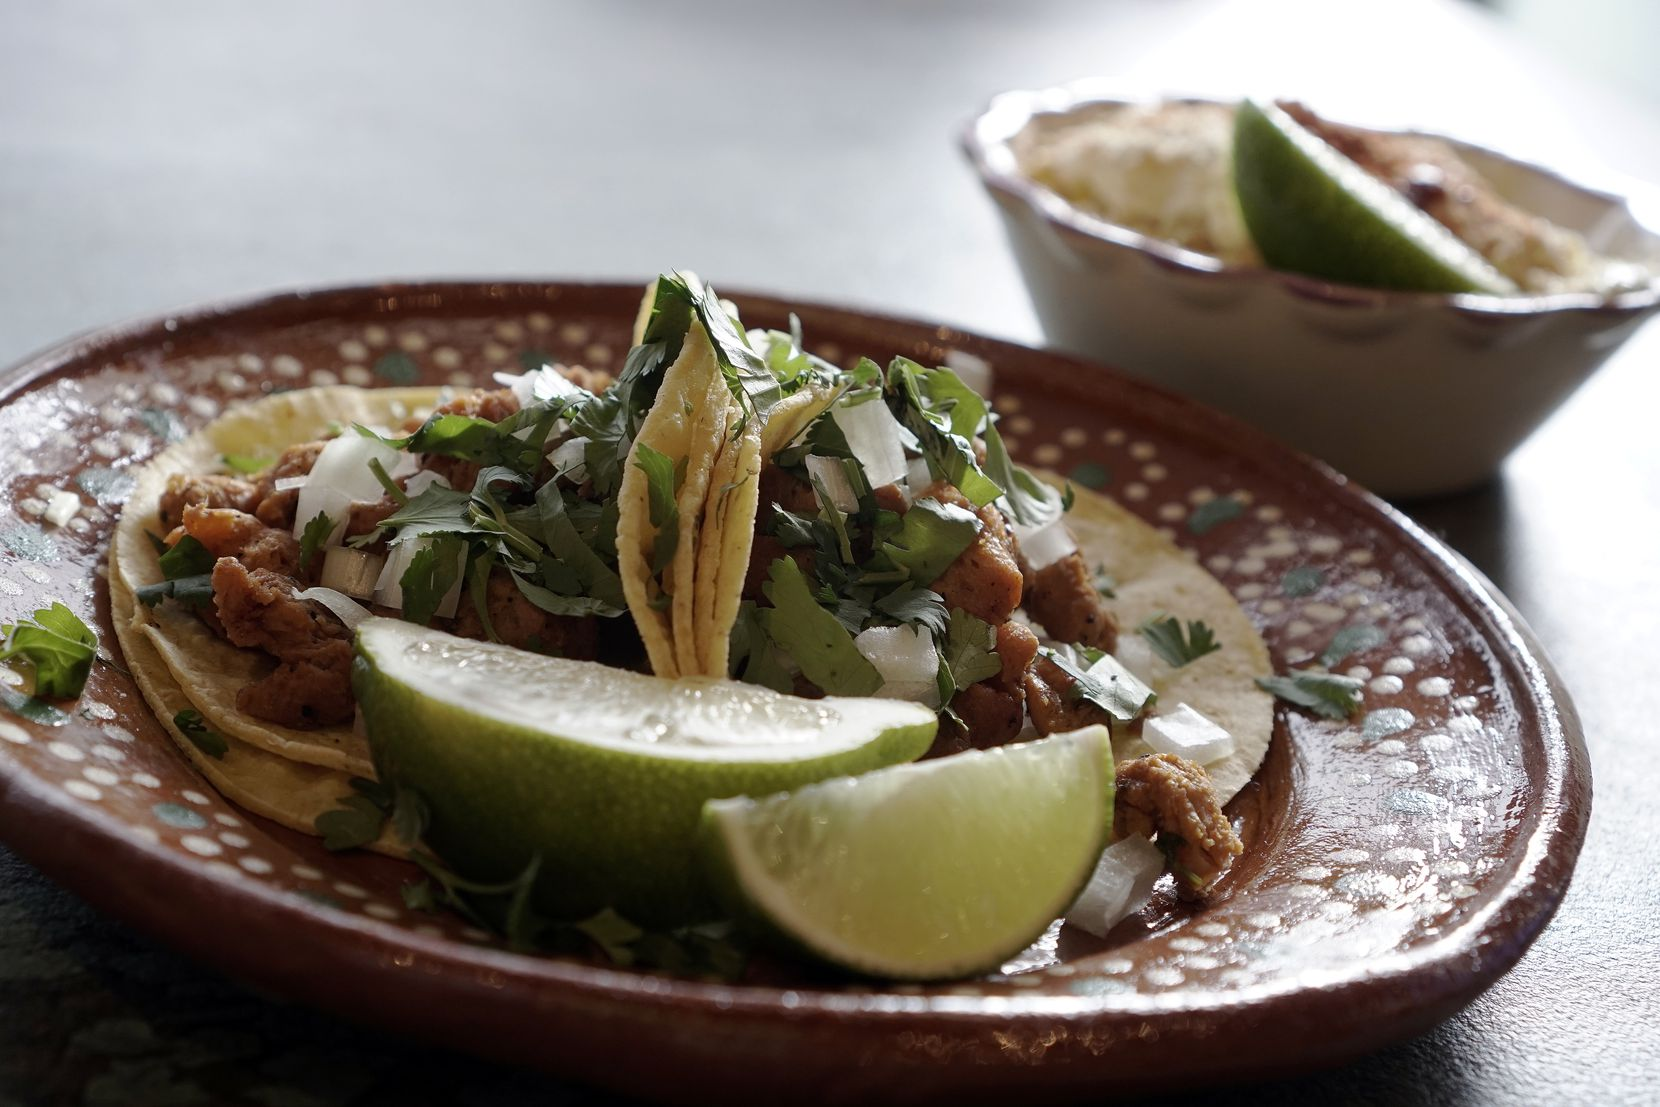 Vegan Street Tacos and Mexican Corn are very popular at Mariachi's Dine In in Fort Worth.